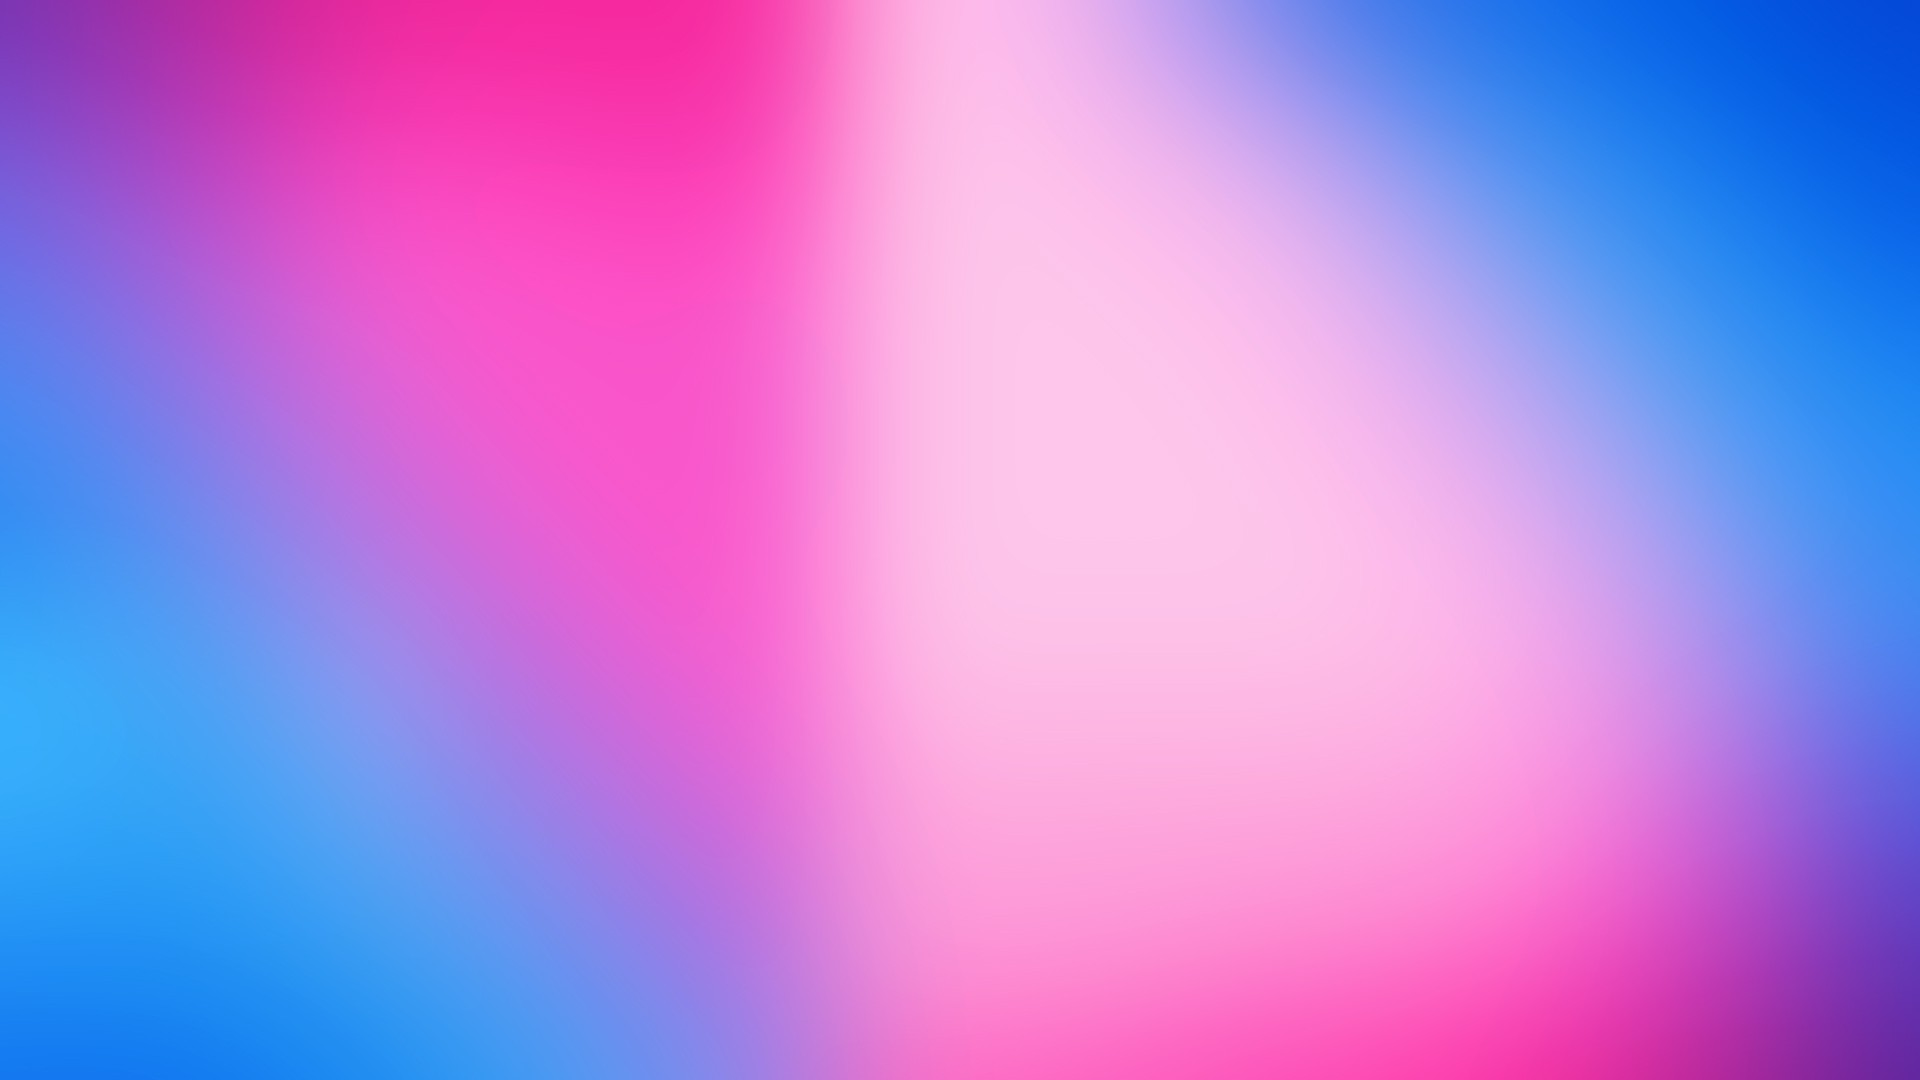 <b>Pink Gradient</b> Stock Photos, Royalty-Free Images &amp; Vectors ...